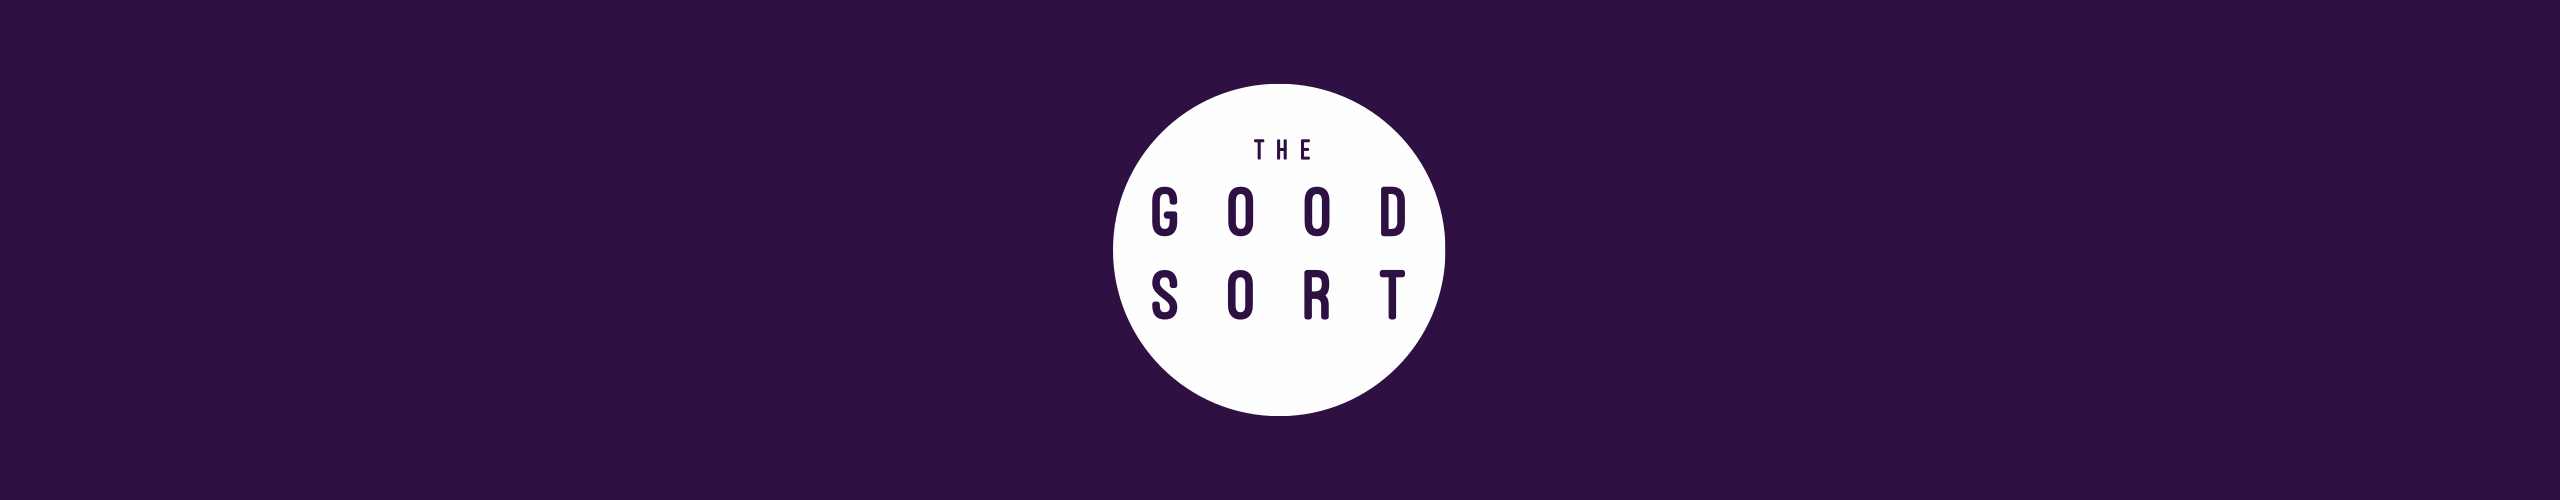 The Good Sort